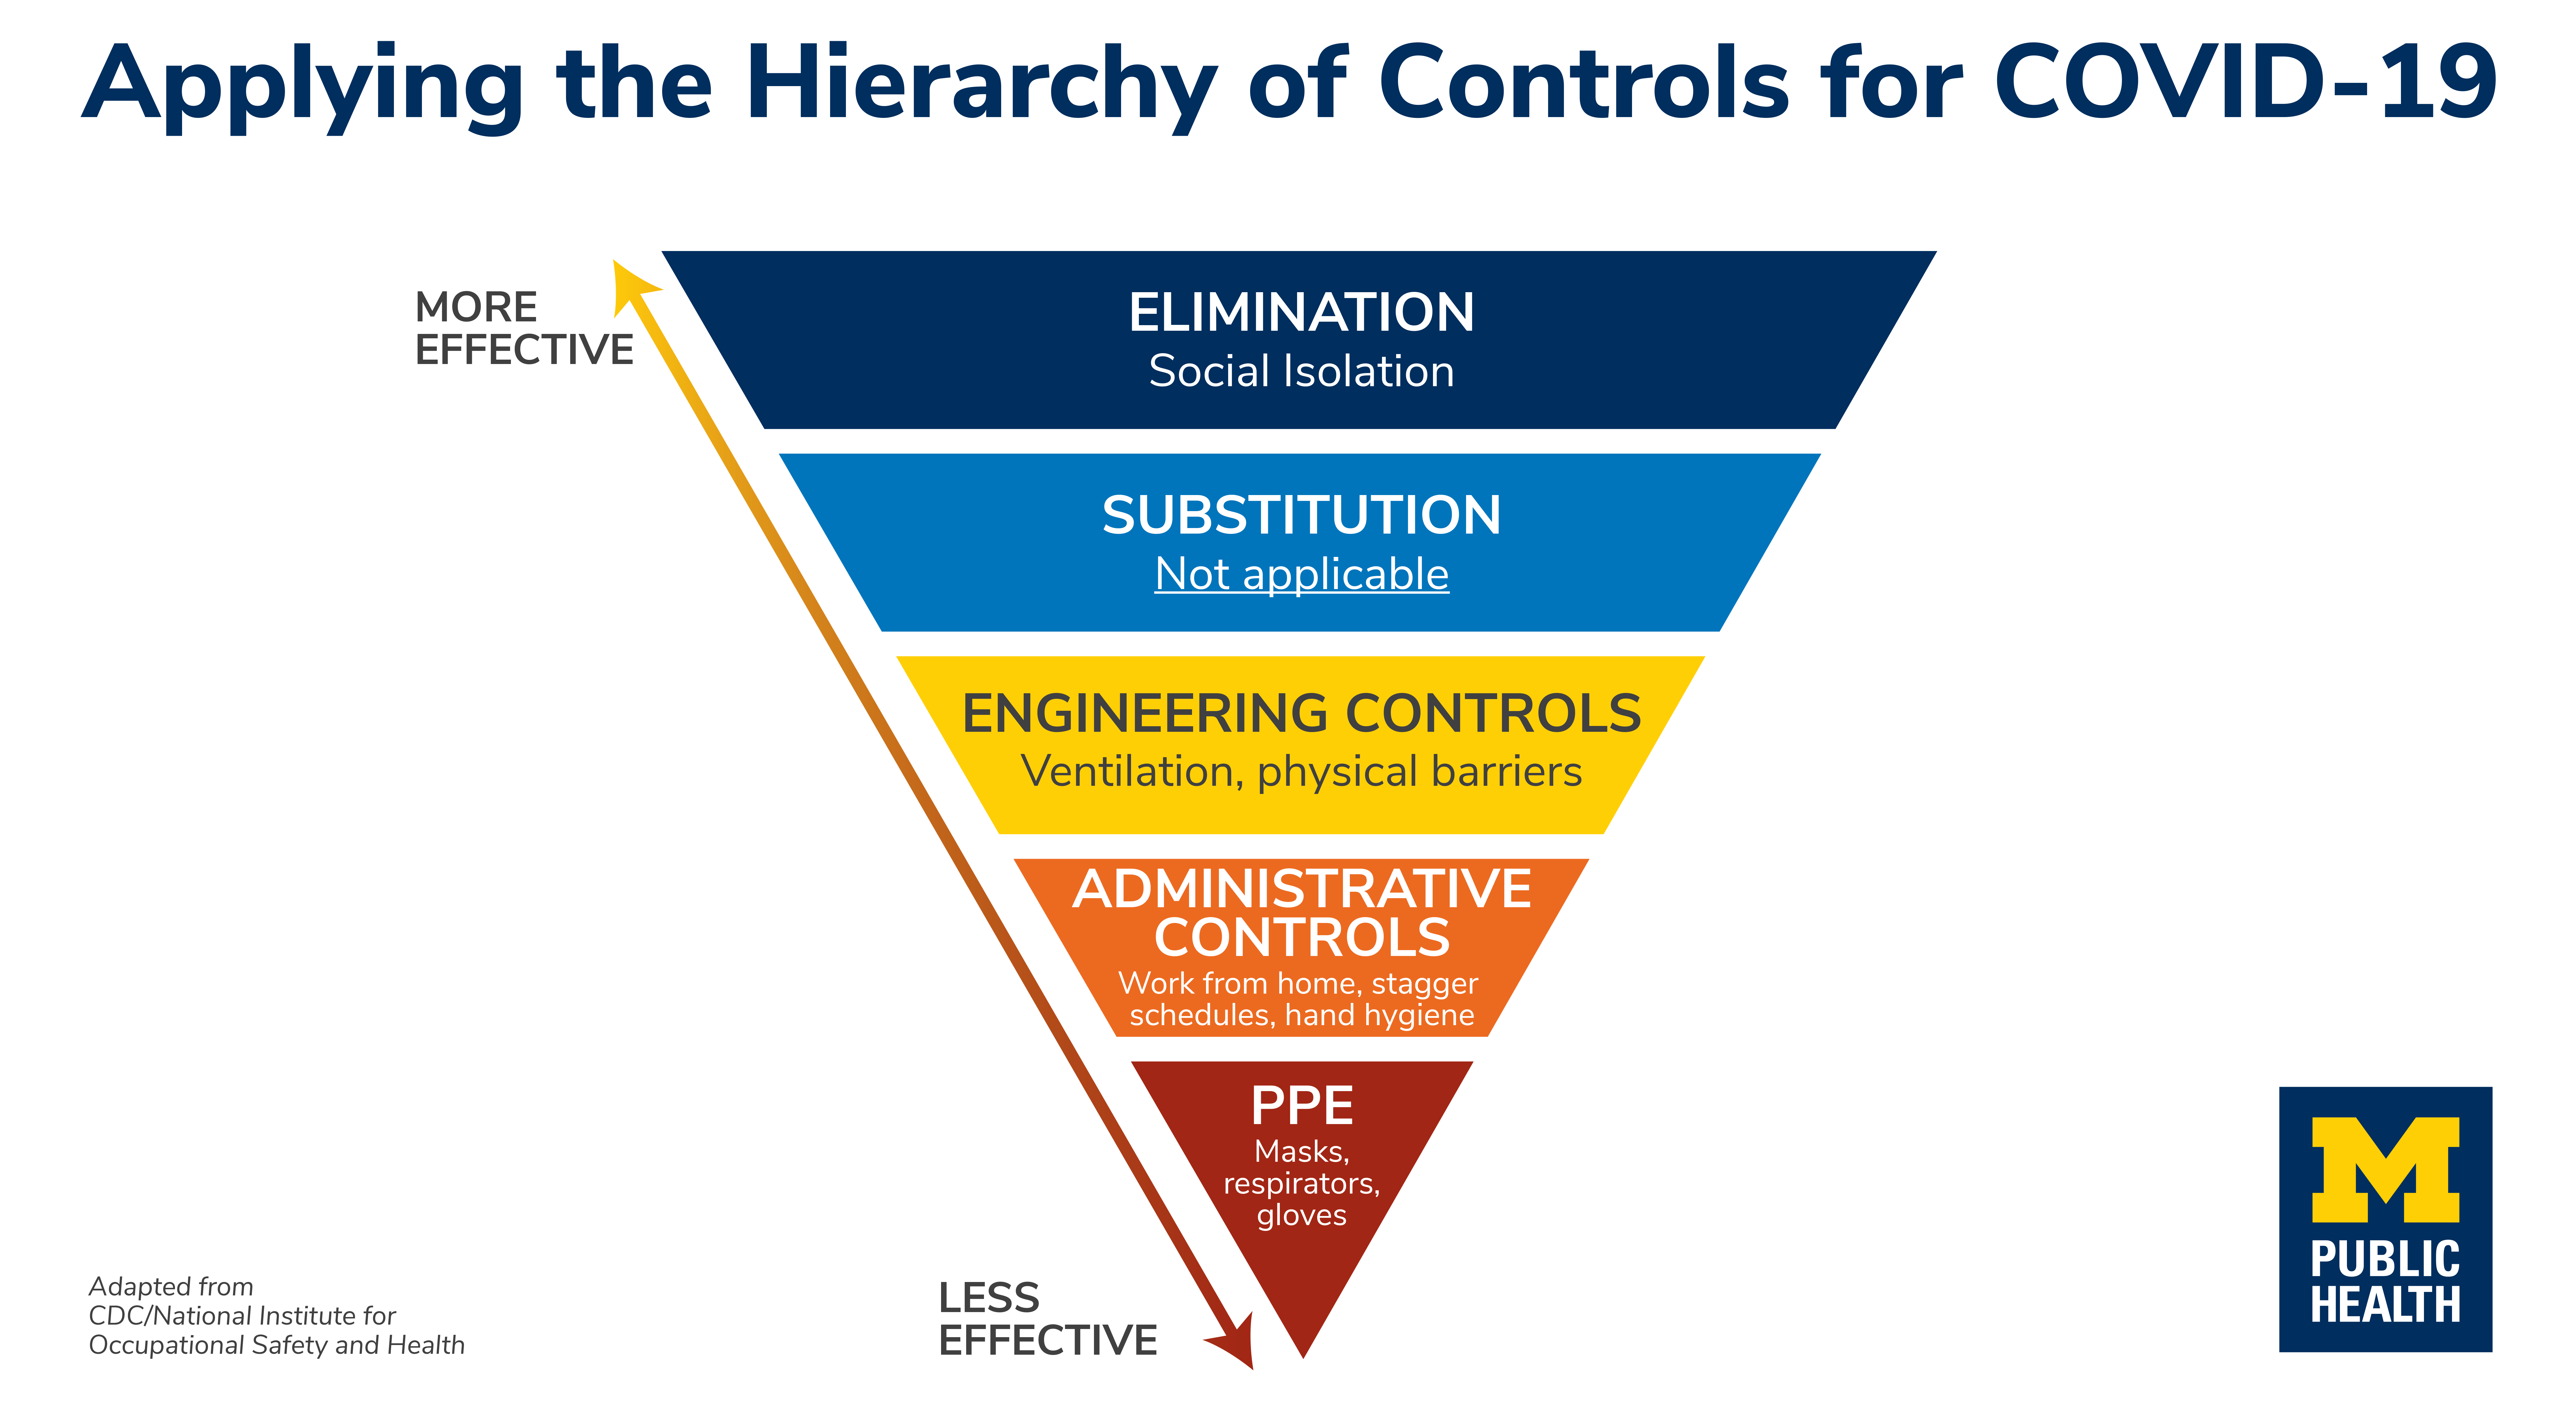 Illustration of applying the hierarchy of controls for COVID-19